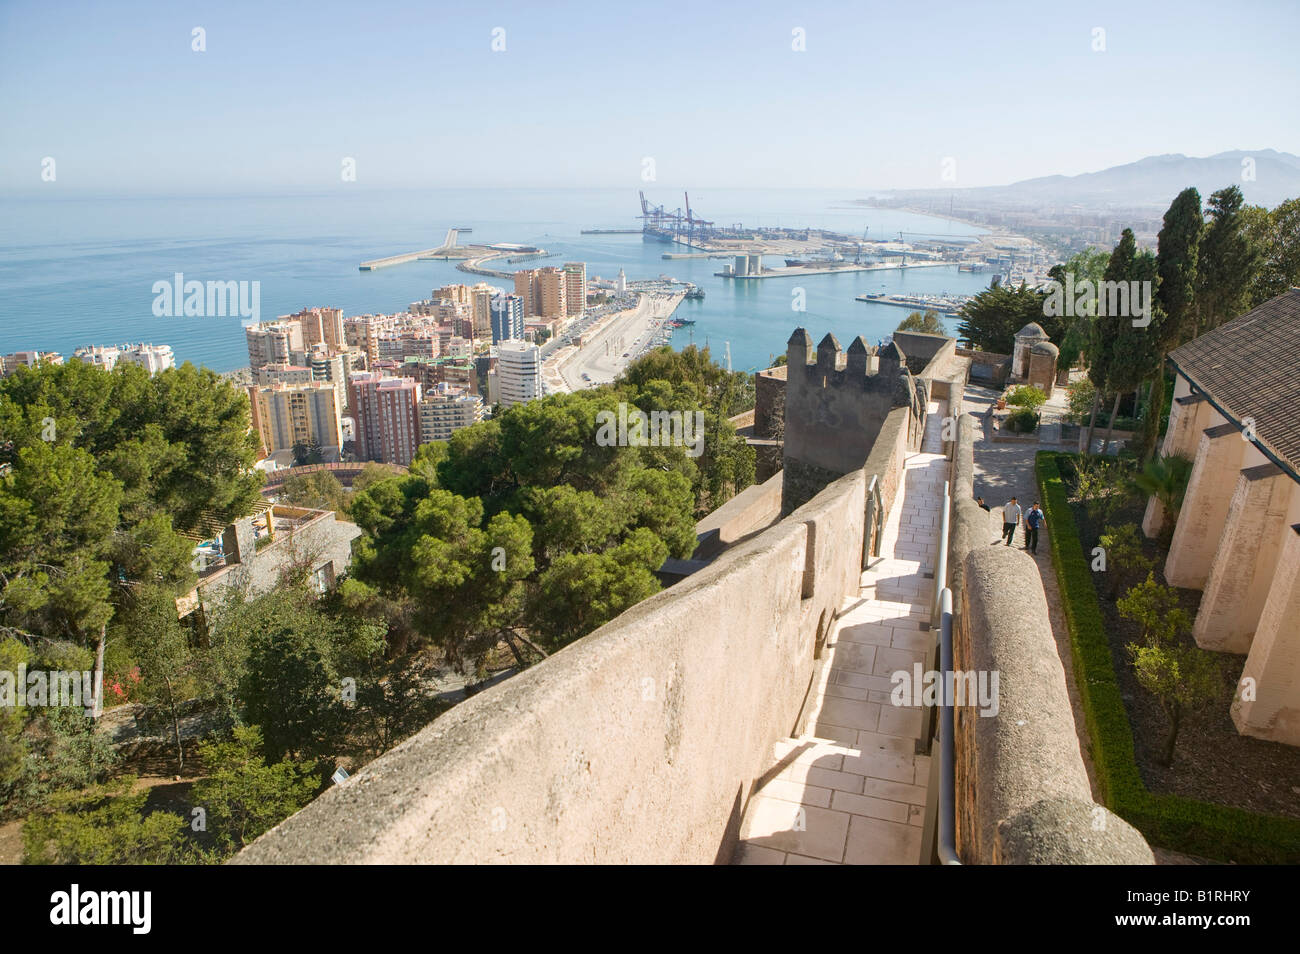 Spain, Malaga, Andalucia, Andalusia, Europe, castle, Fort, Fortification, Fortress, Islamic, Islamisch,  Architecture, - Stock Image